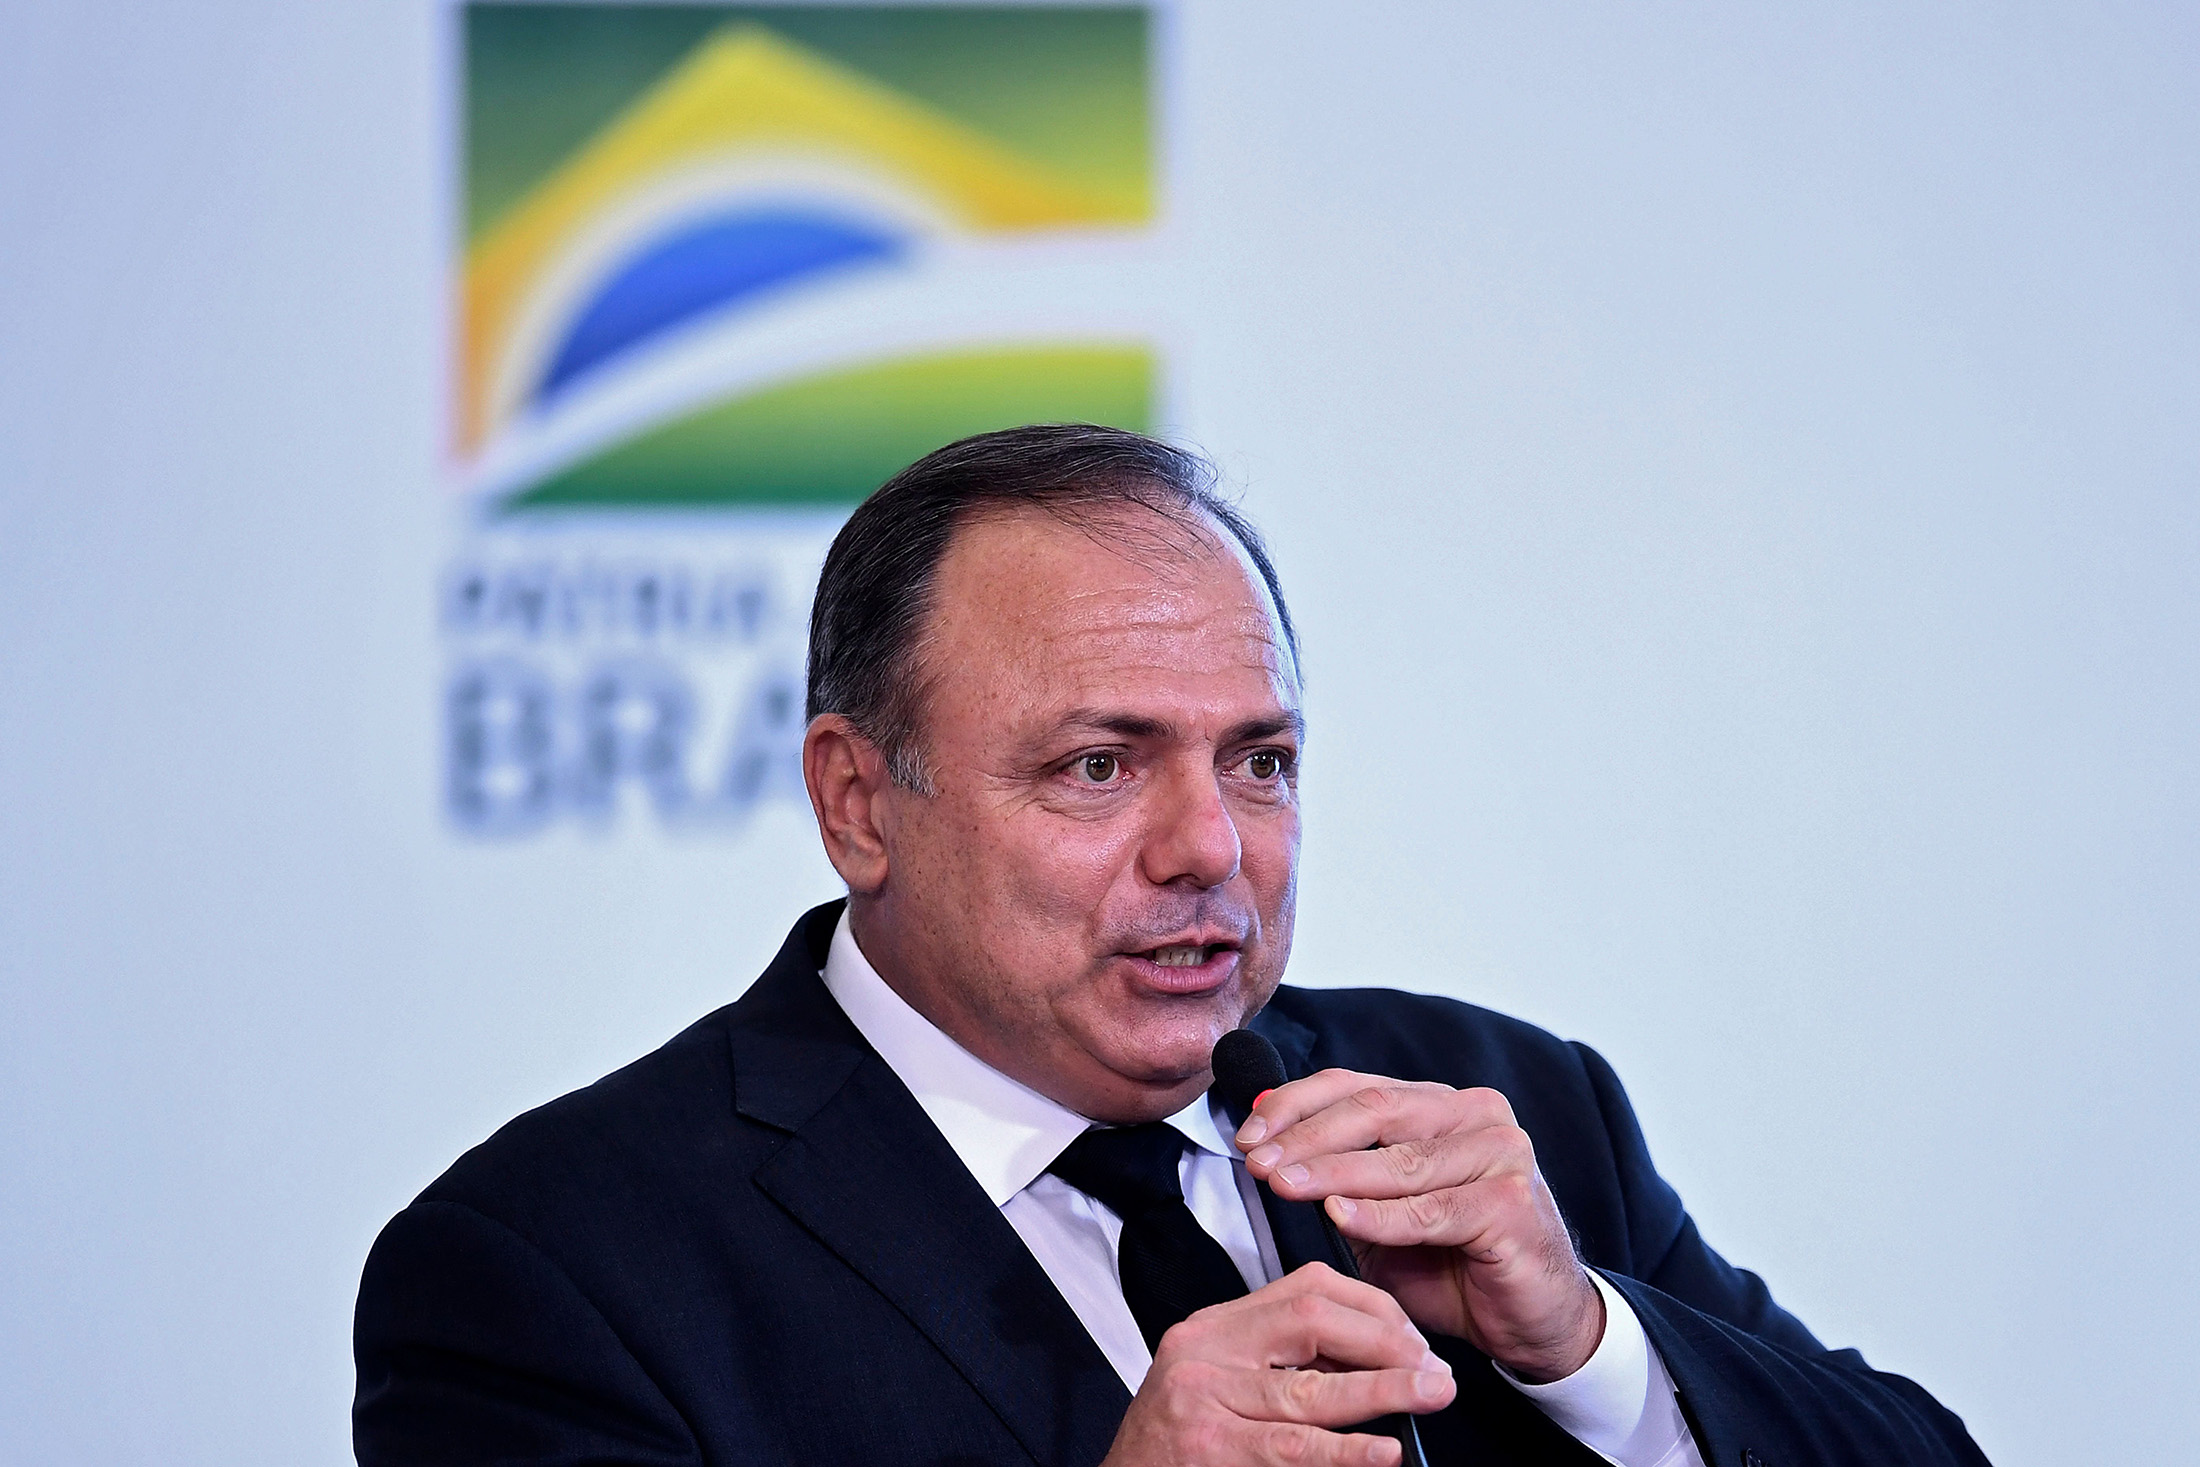 Brazilian Health Minister Eduardo Pazuello at the Planalto Palace in Brasilia, on October 14, 2020.